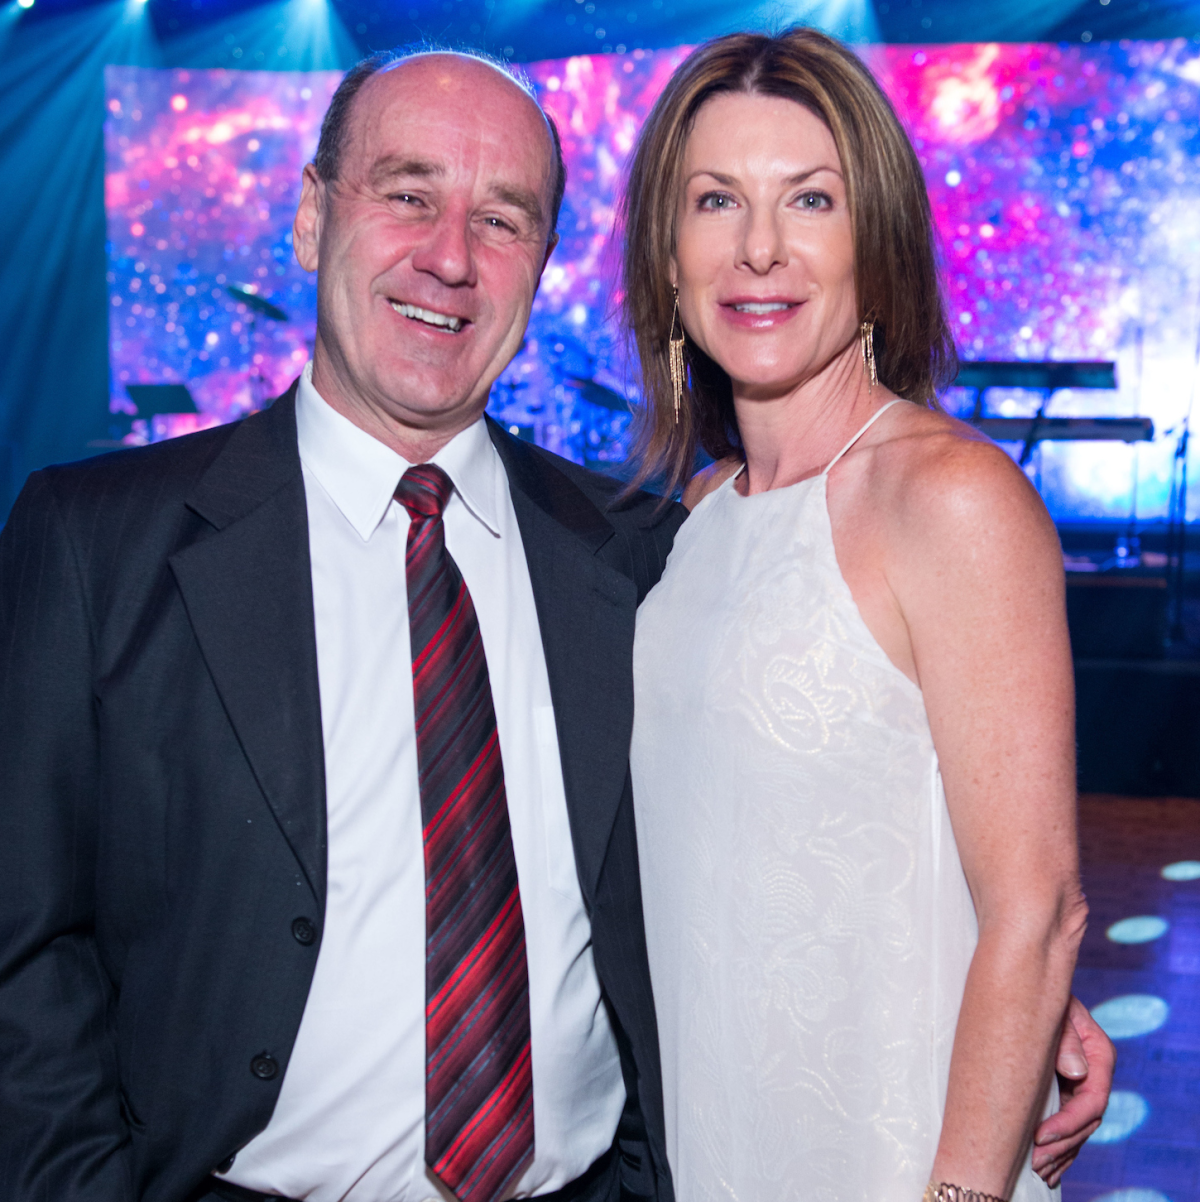 Houston, Space Center Houston Galaxy Gala, April 2017, Anthony Alessi, Ann Parks Stallings